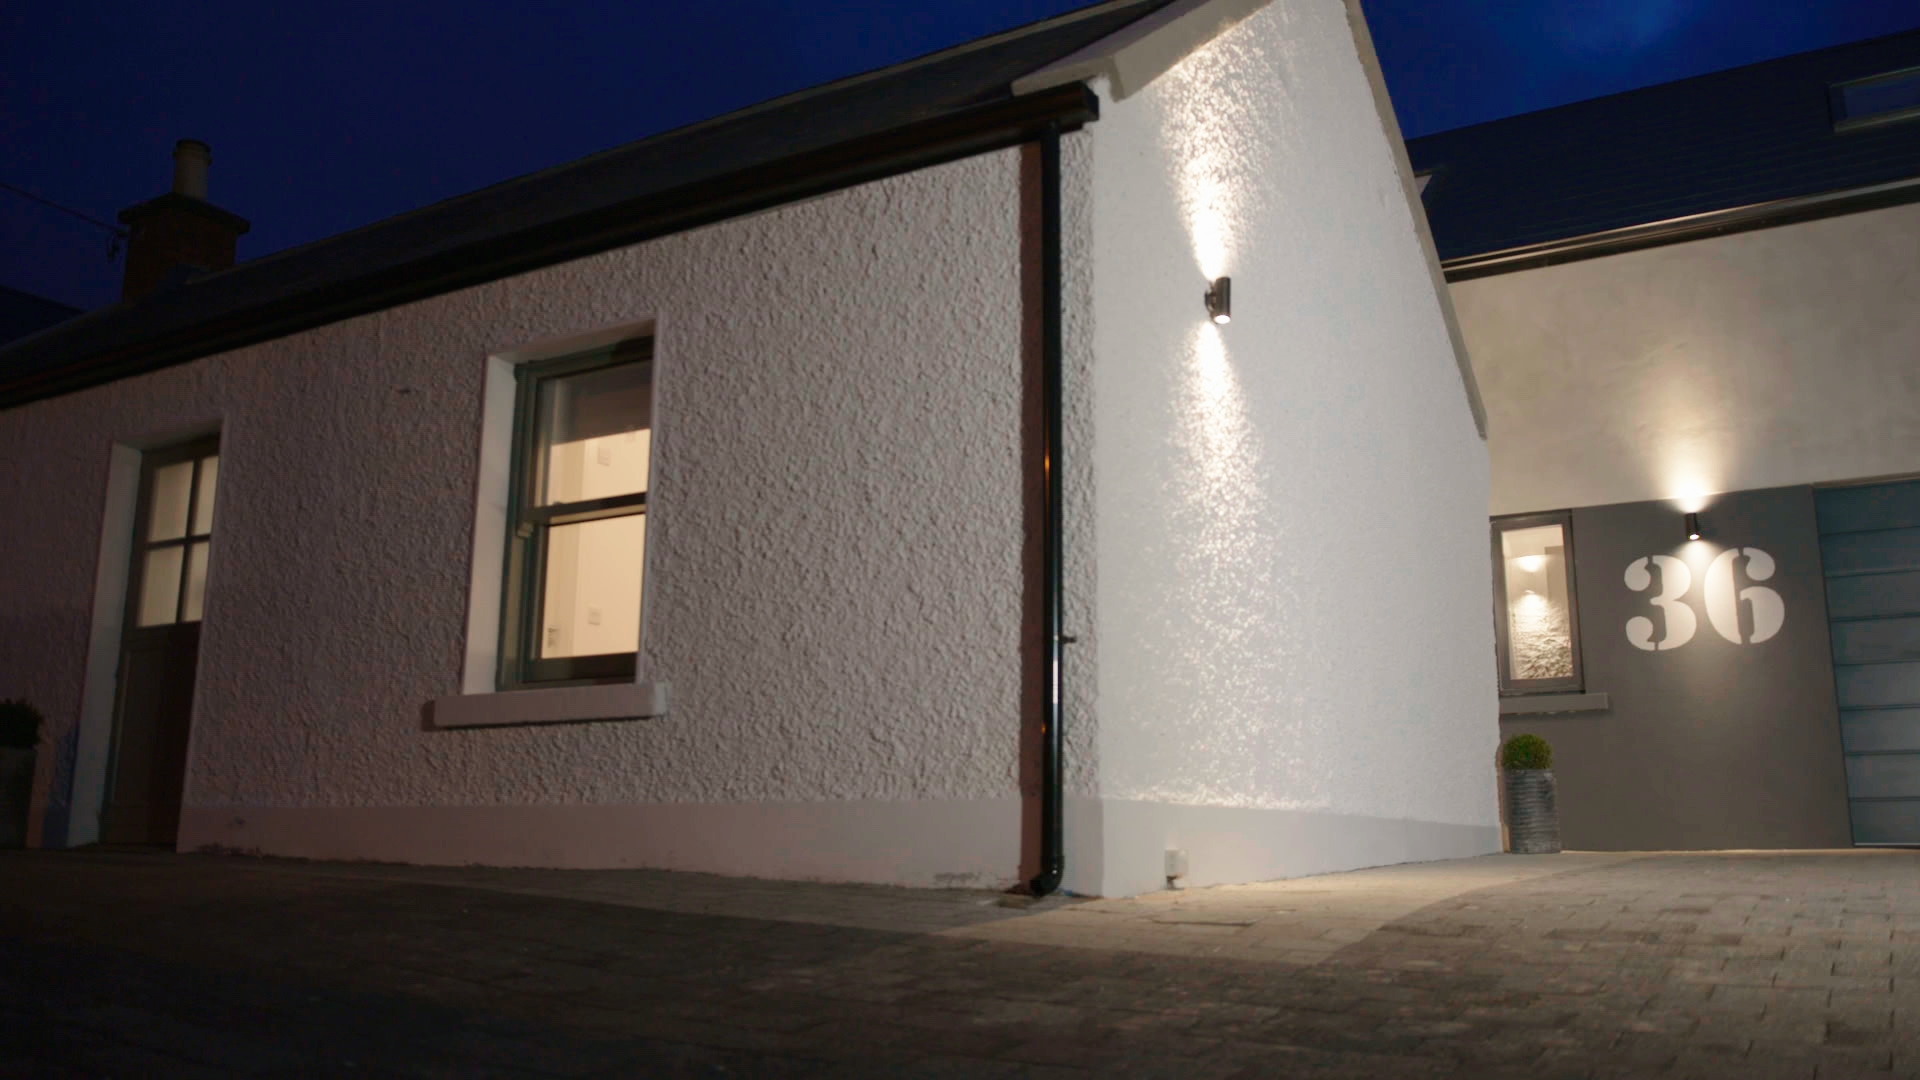 TX1 RTI10 Malahide After Cottage Exterior Night.jpg